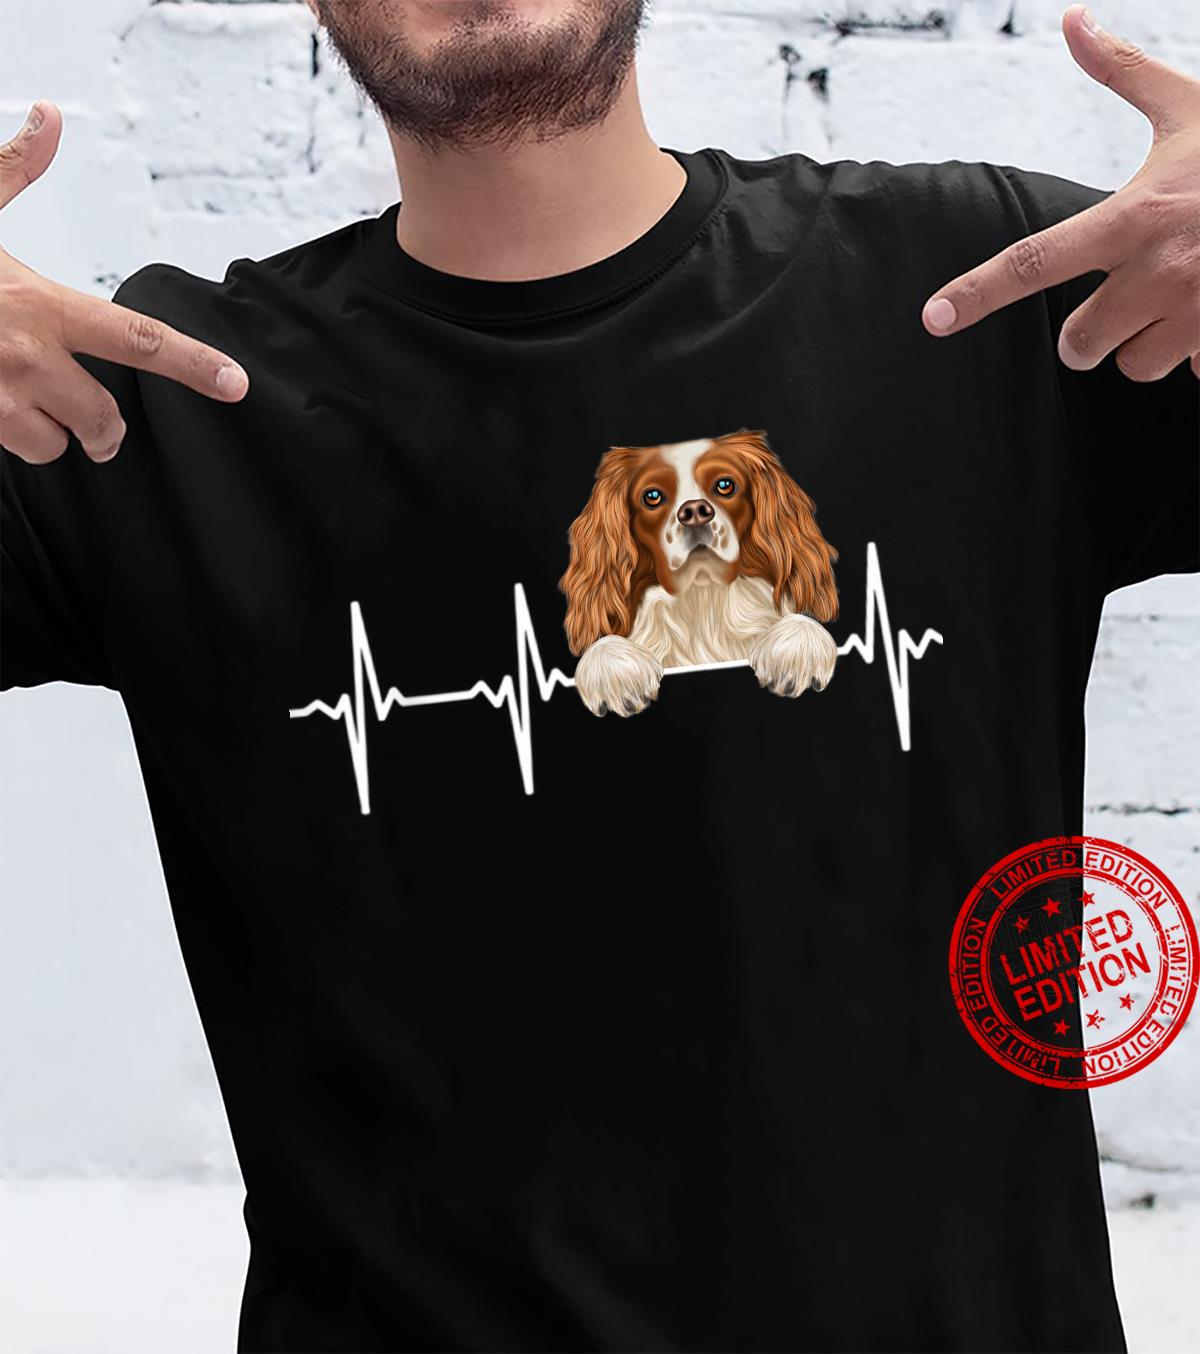 Funny Dog Heartbeat For English Toy Spaniels Shirt